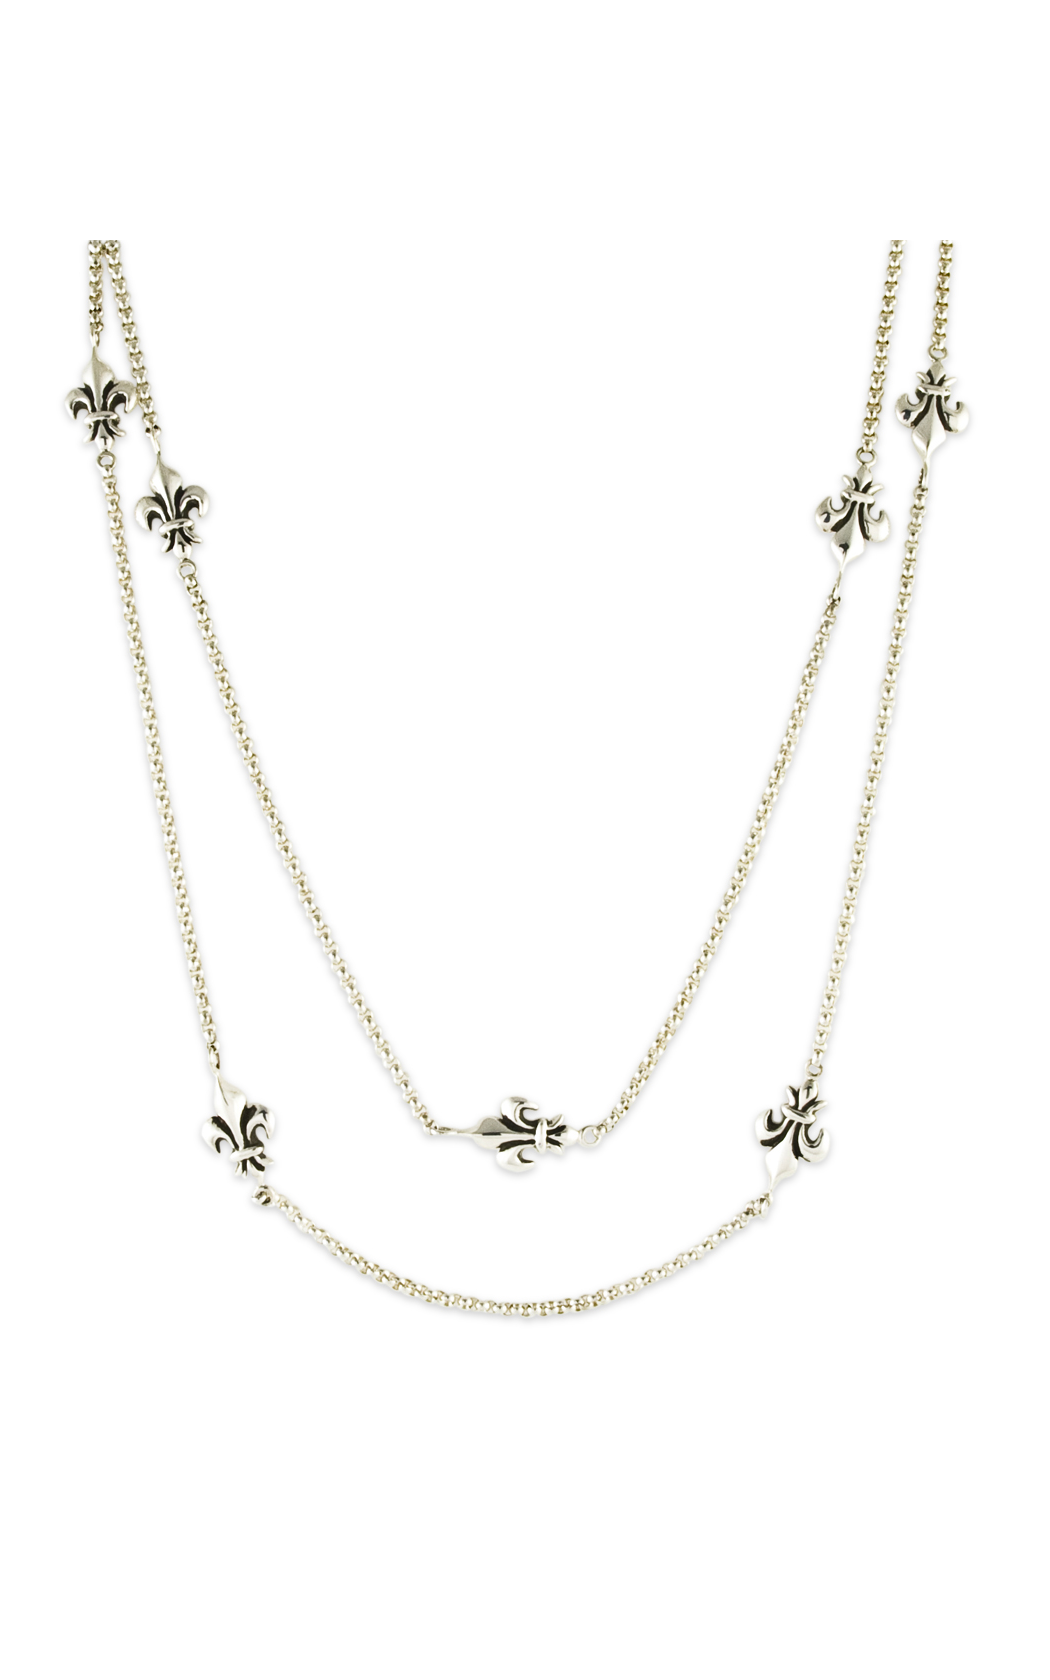 Zina Contemporary Necklace A1131-51 product image